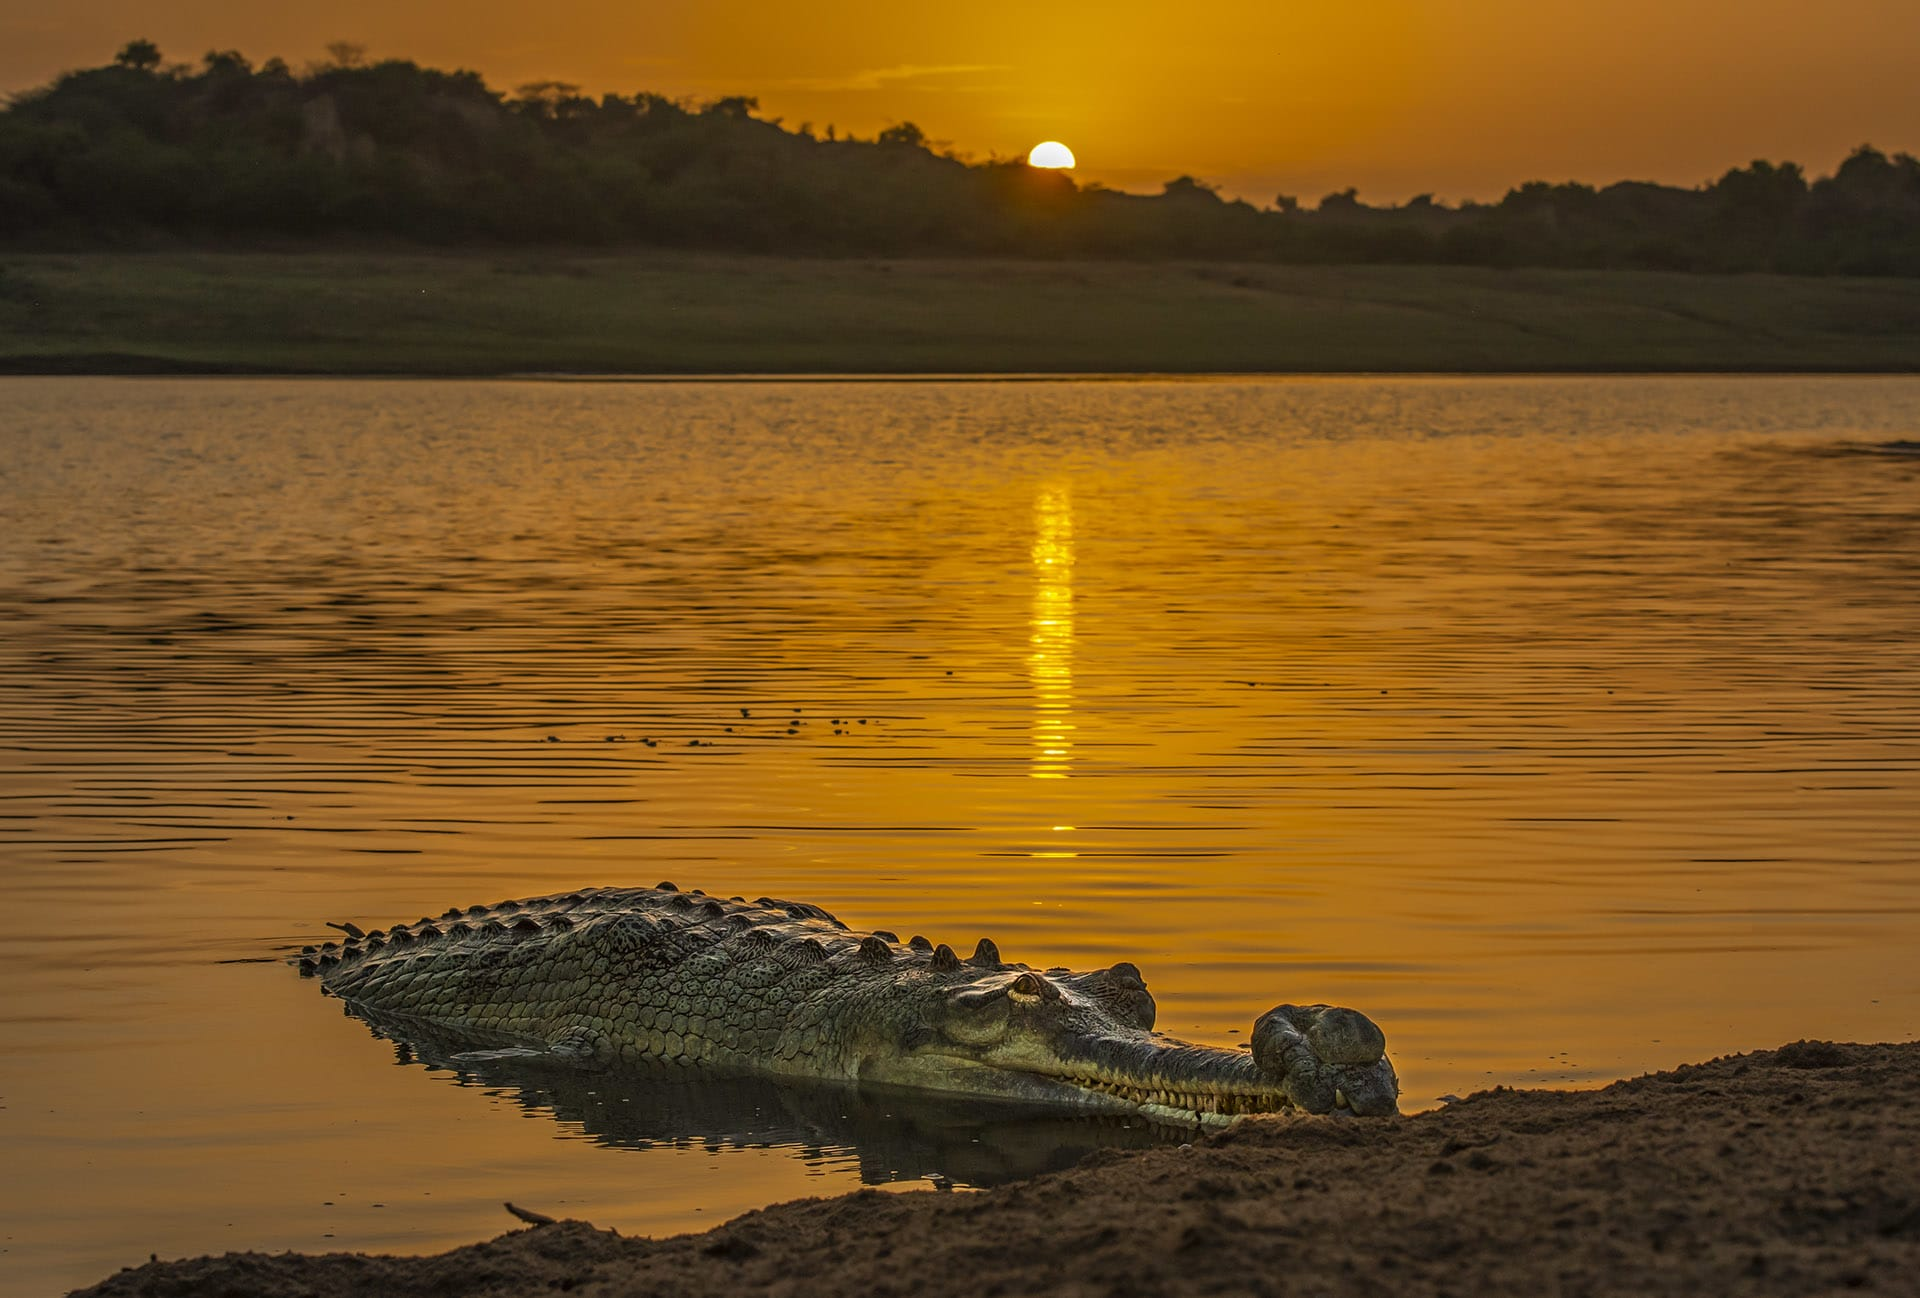 """The star of National Chambal Sanctuary is the gharial, a cousin of the crocodile, named for the """"ghara"""" or pot on the snout of adult males. Gharials (Gavialis gangeticus) inspire fear among many people, but they are strictly fish-eating animals. Their numbers were once abundant along the rivers of northern India, but habitat degradation has led to a steep decline in their population. The IUCN Red List categorises gharials as critically endangered. Photo: Dhritiman Mukherjee"""